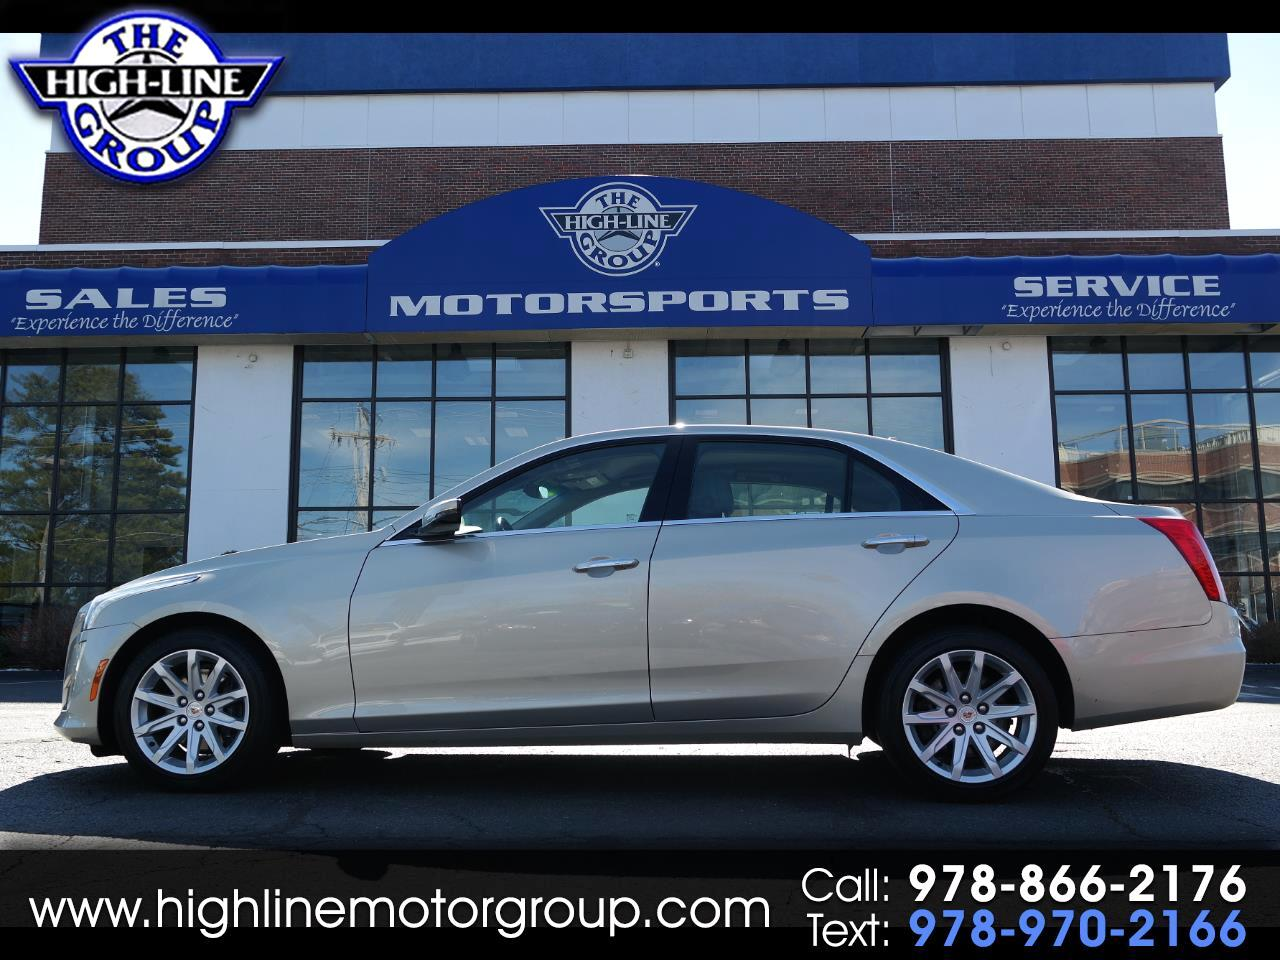 2014 Cadillac CTS Sedan 4dr Sdn 2.0L Turbo AWD